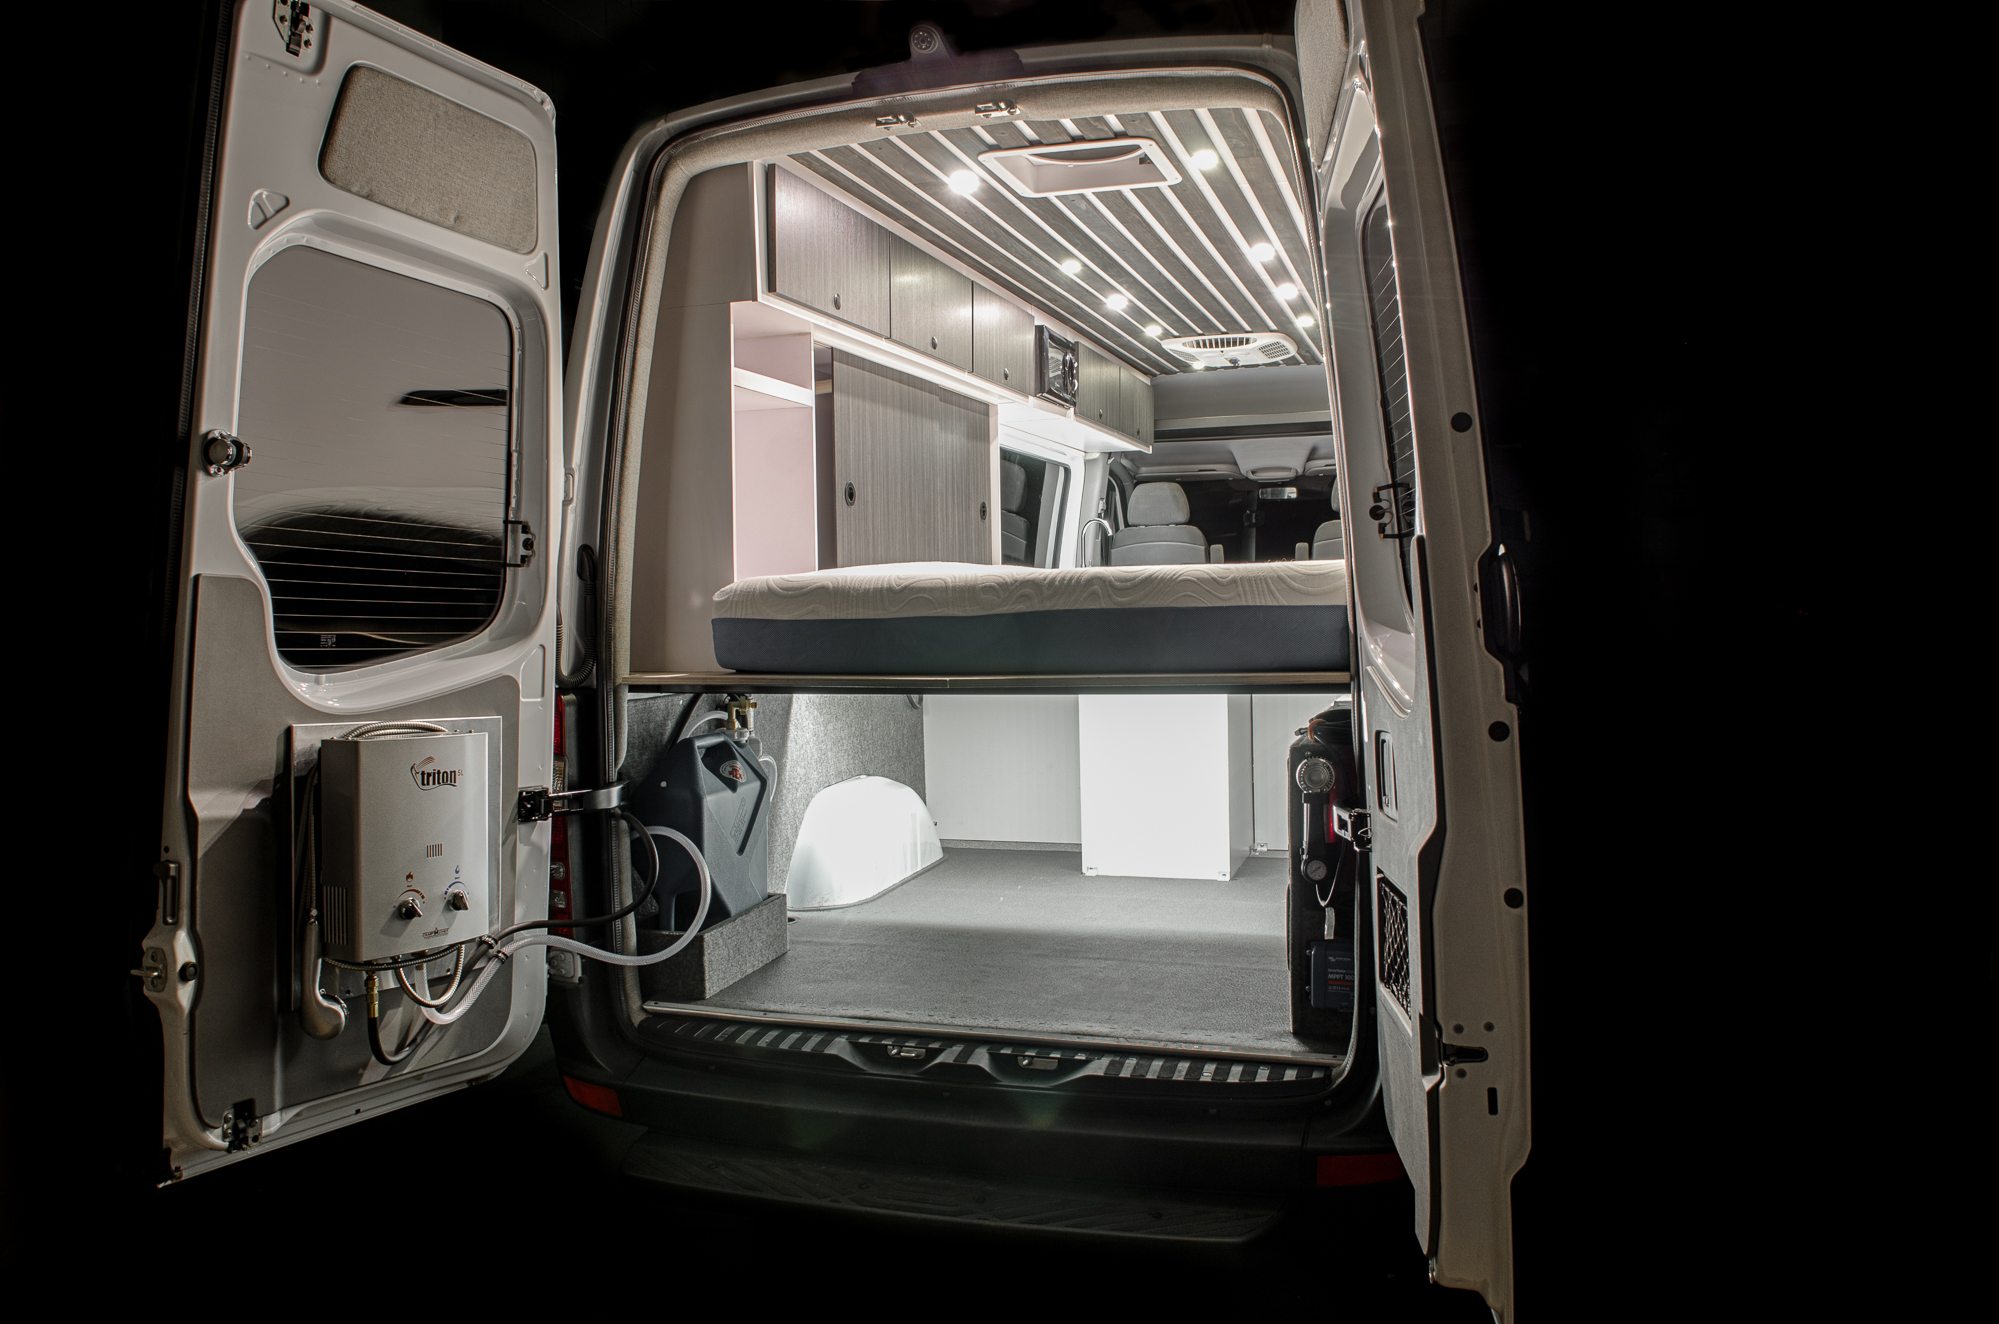 This build incorporates a custom stained slatted ceiling, one off CNC cut cabinetry, and 2-zone (dimmable) LED lighting to highlight it all. Mounted to the rear door is a Camp Chef propane heated shower system fed by a 7-gallon jerry can and electric water pump. 500W of solar feeds 5 Battleborn lithium batteries to power everything from the Remote Direct TV system, Coleman Mach 8 A/C unit, air compressor, Isotherm refrigerator, and Kicker subwoofer.